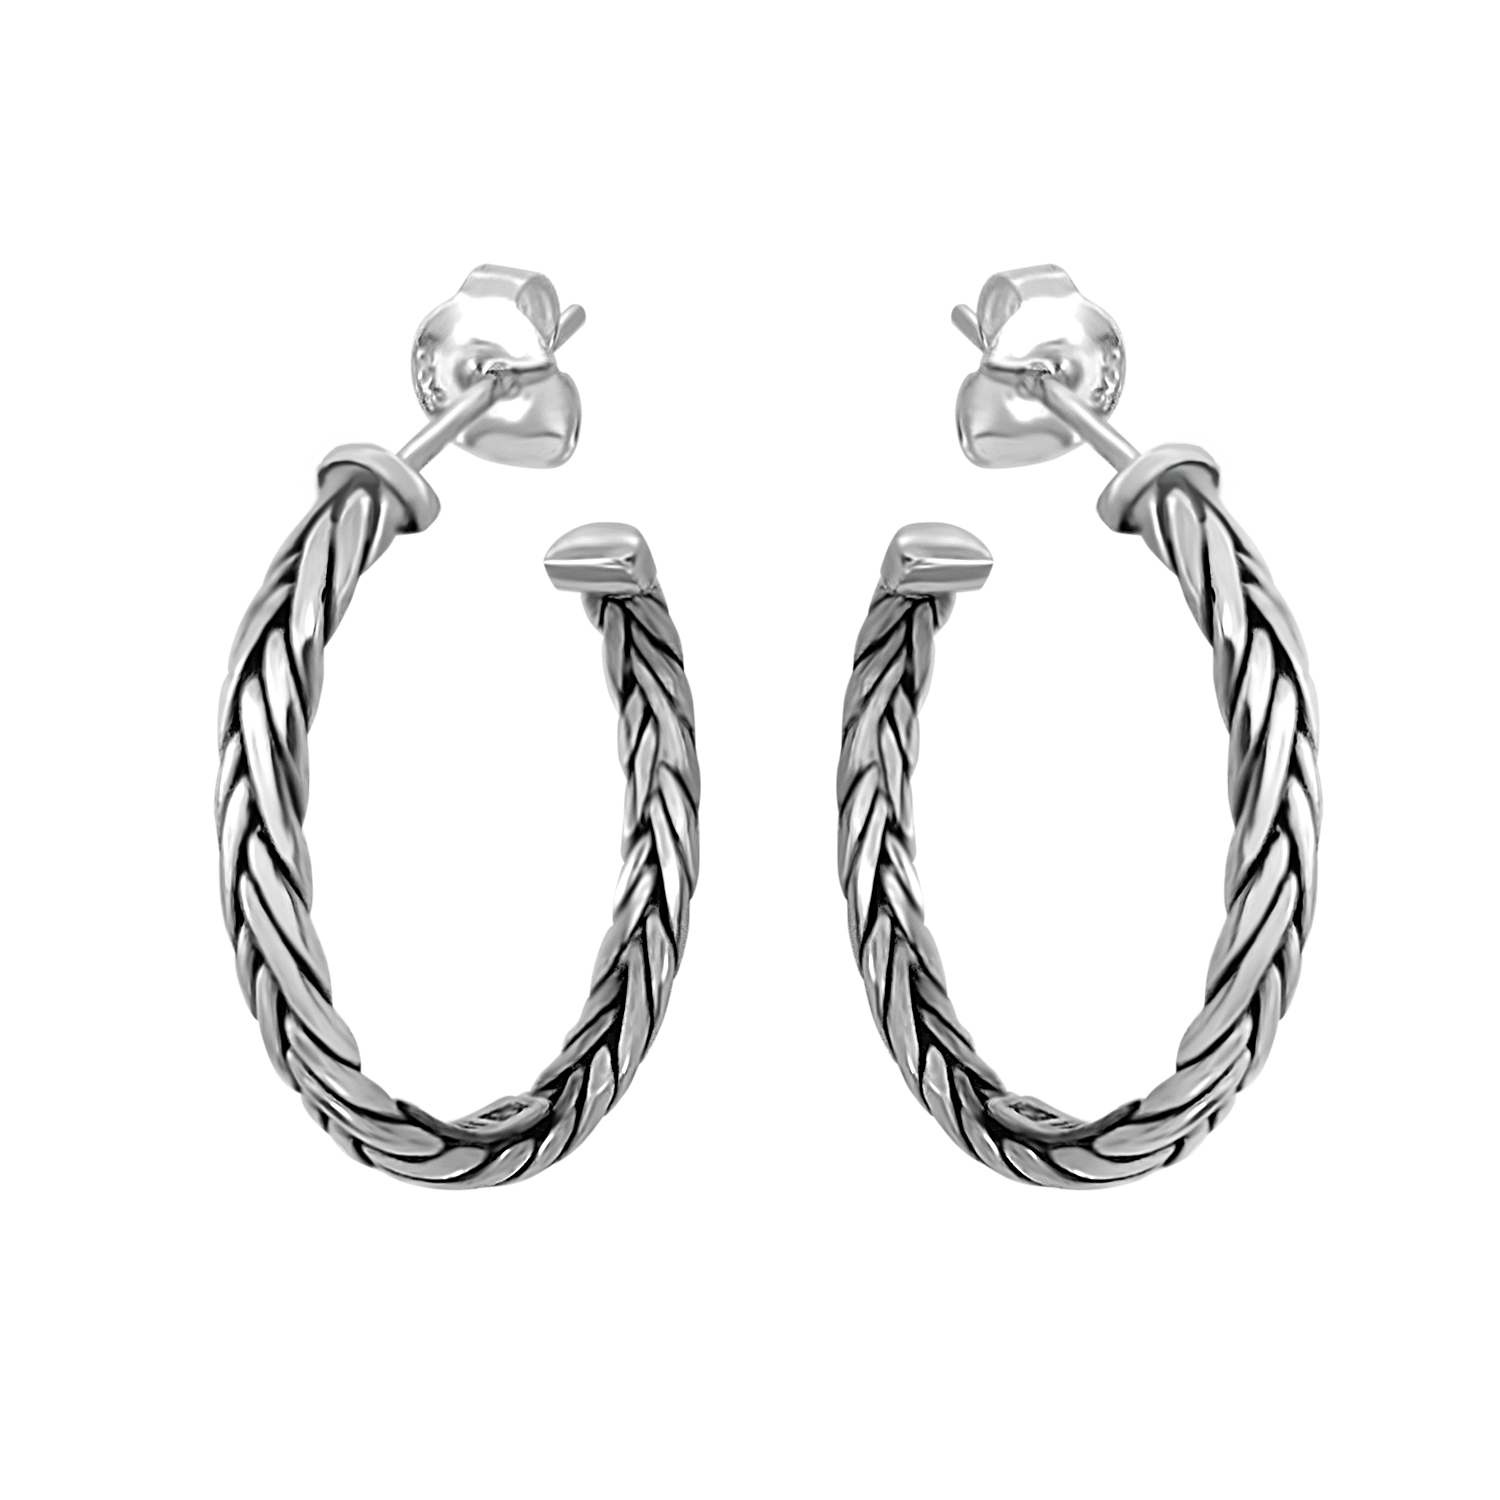 sterling silver hoop earrings braided style butterfly closure kemmi jewelry bohemian handmade